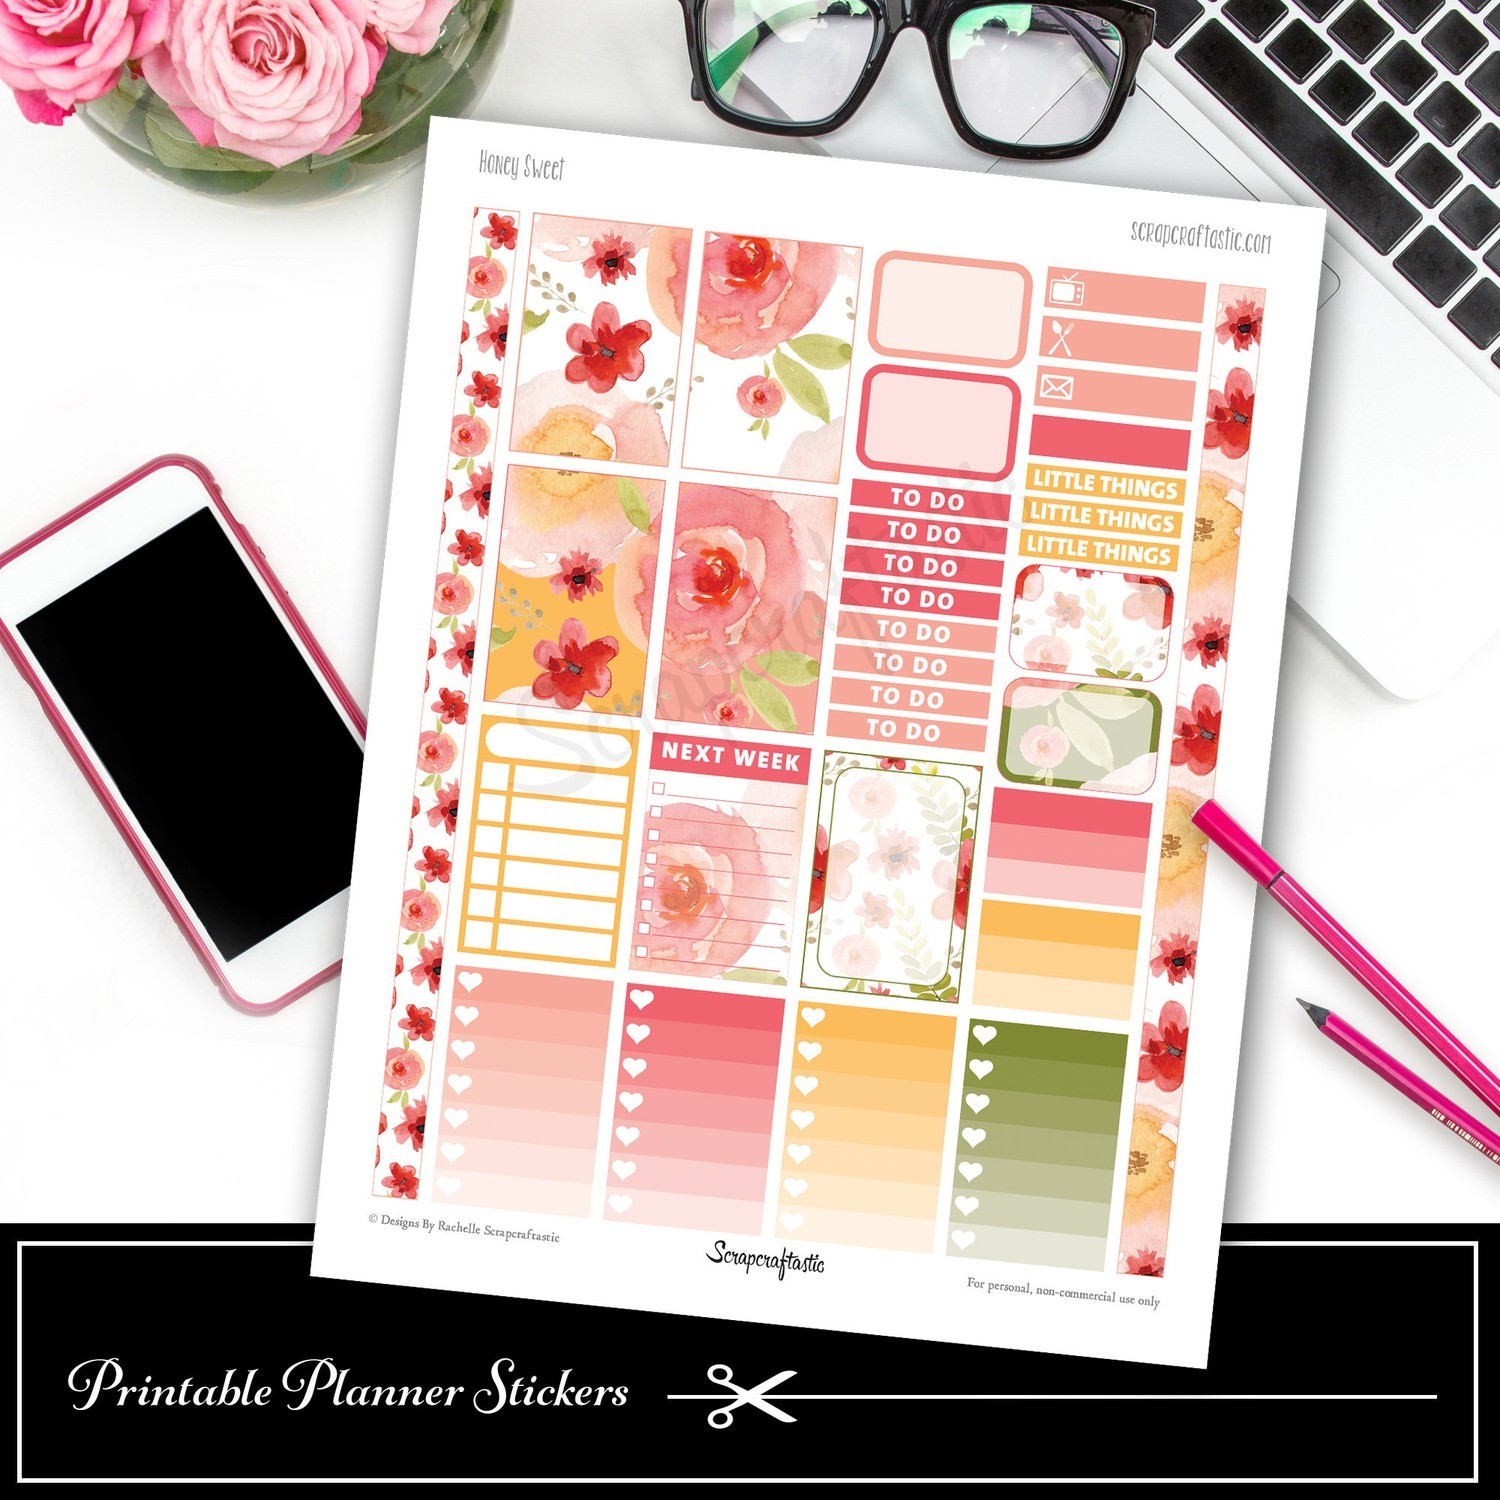 Honey Sweet Classic Happy Planner Printable Planner Stickers